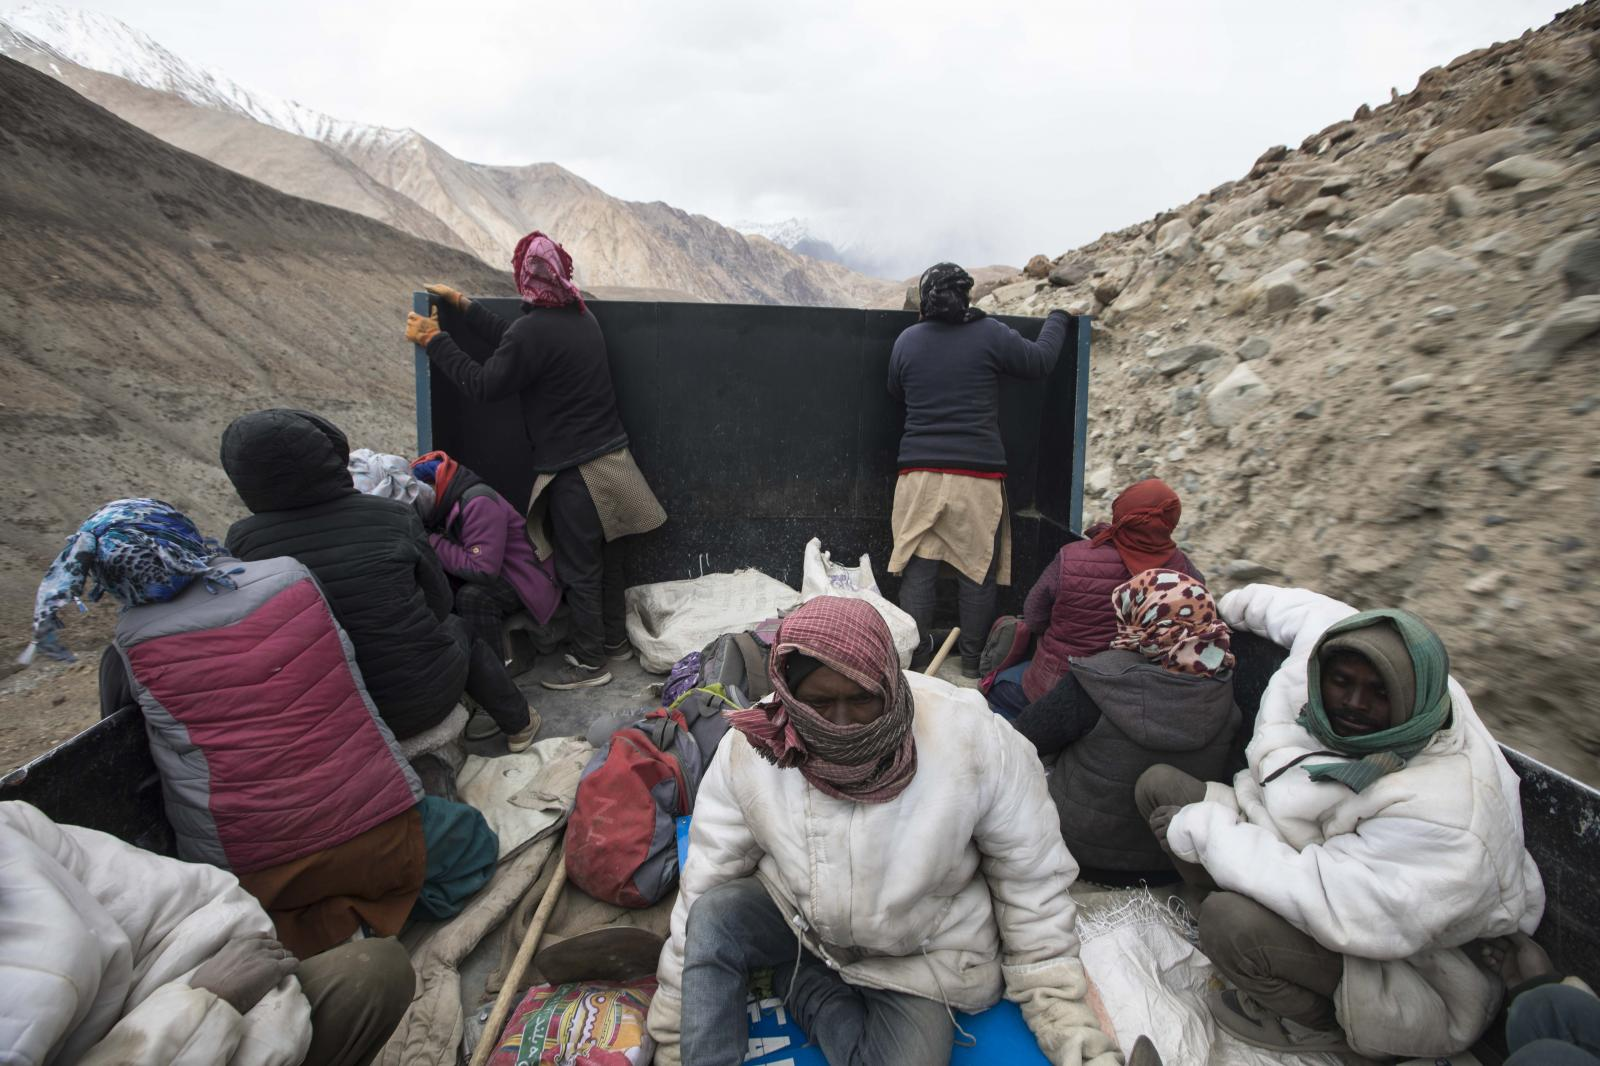 Road maintenance workers from India's low-lying eastern Jharkhand state and local workers from Ladakh ride on the back of a truck at the end of their working day along Pangong Lake road.